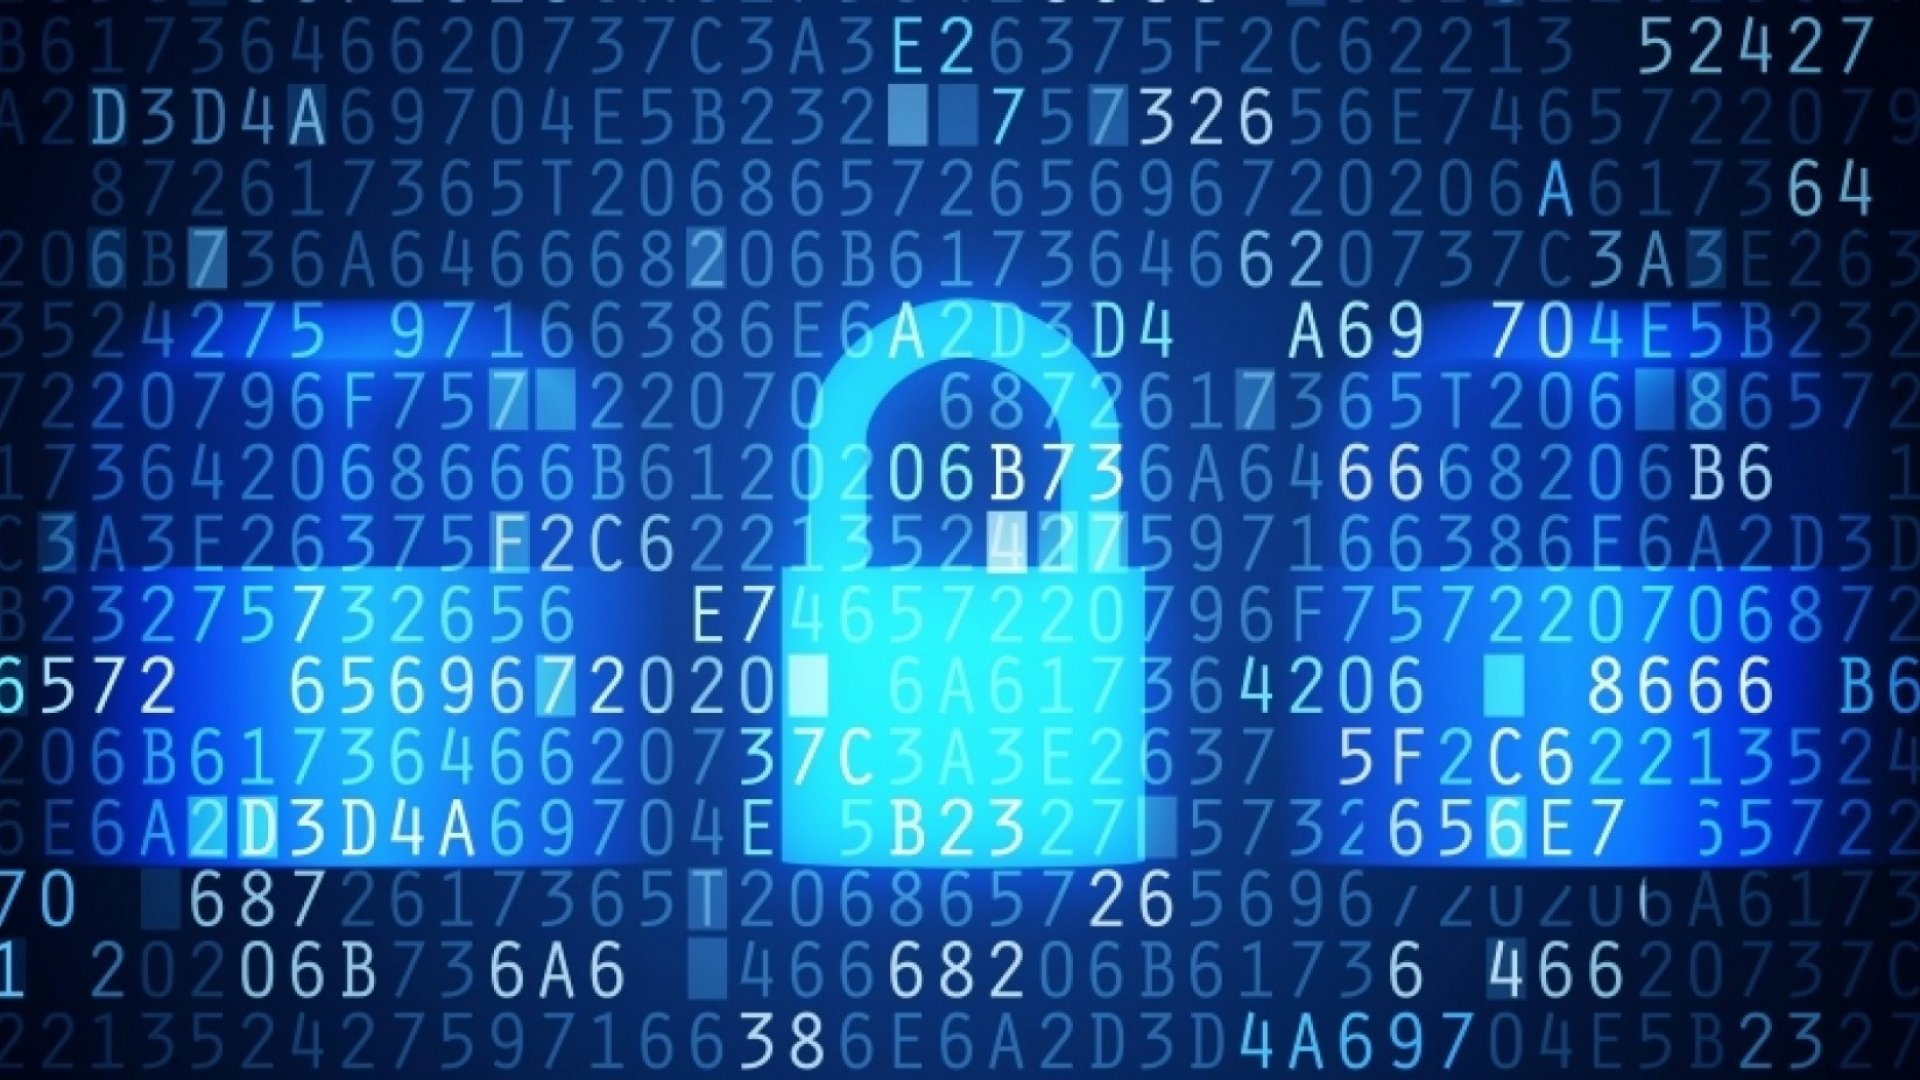 4 Cybersecurity Threats You May Be Overlooking